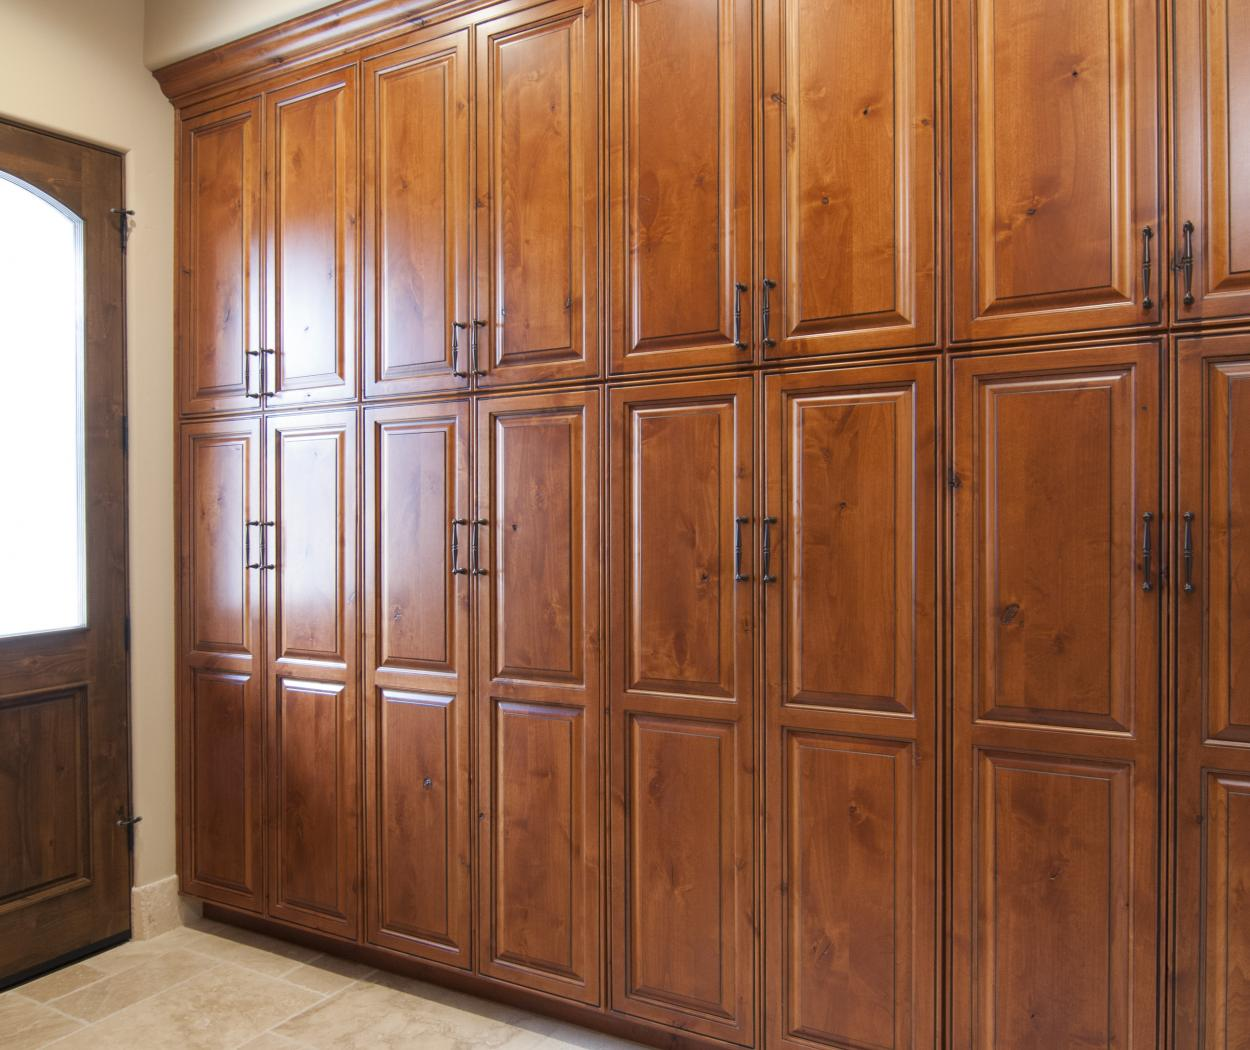 Beautiful Traditional Hallway Ceiling Height Built-Ins with Oil Rubbed Bronze Hardware